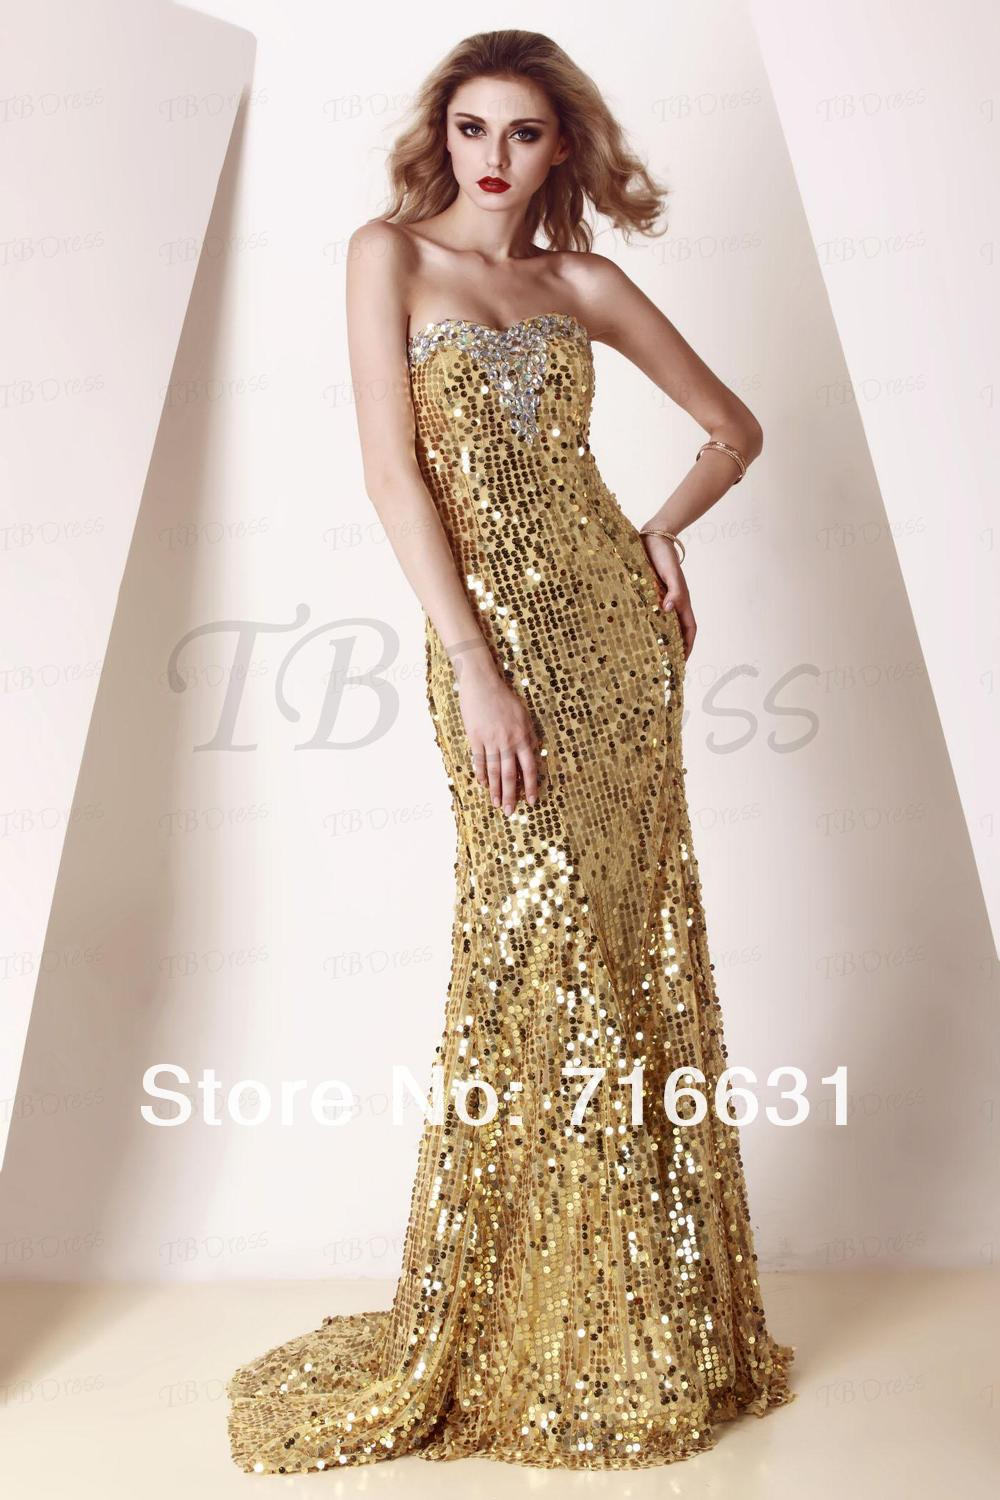 2013 Hot Selling Free Shipping Gold Sequins Long Evening Prom Dress-in Prom Dresses from Apparel & Accessories on Aliexpress.com